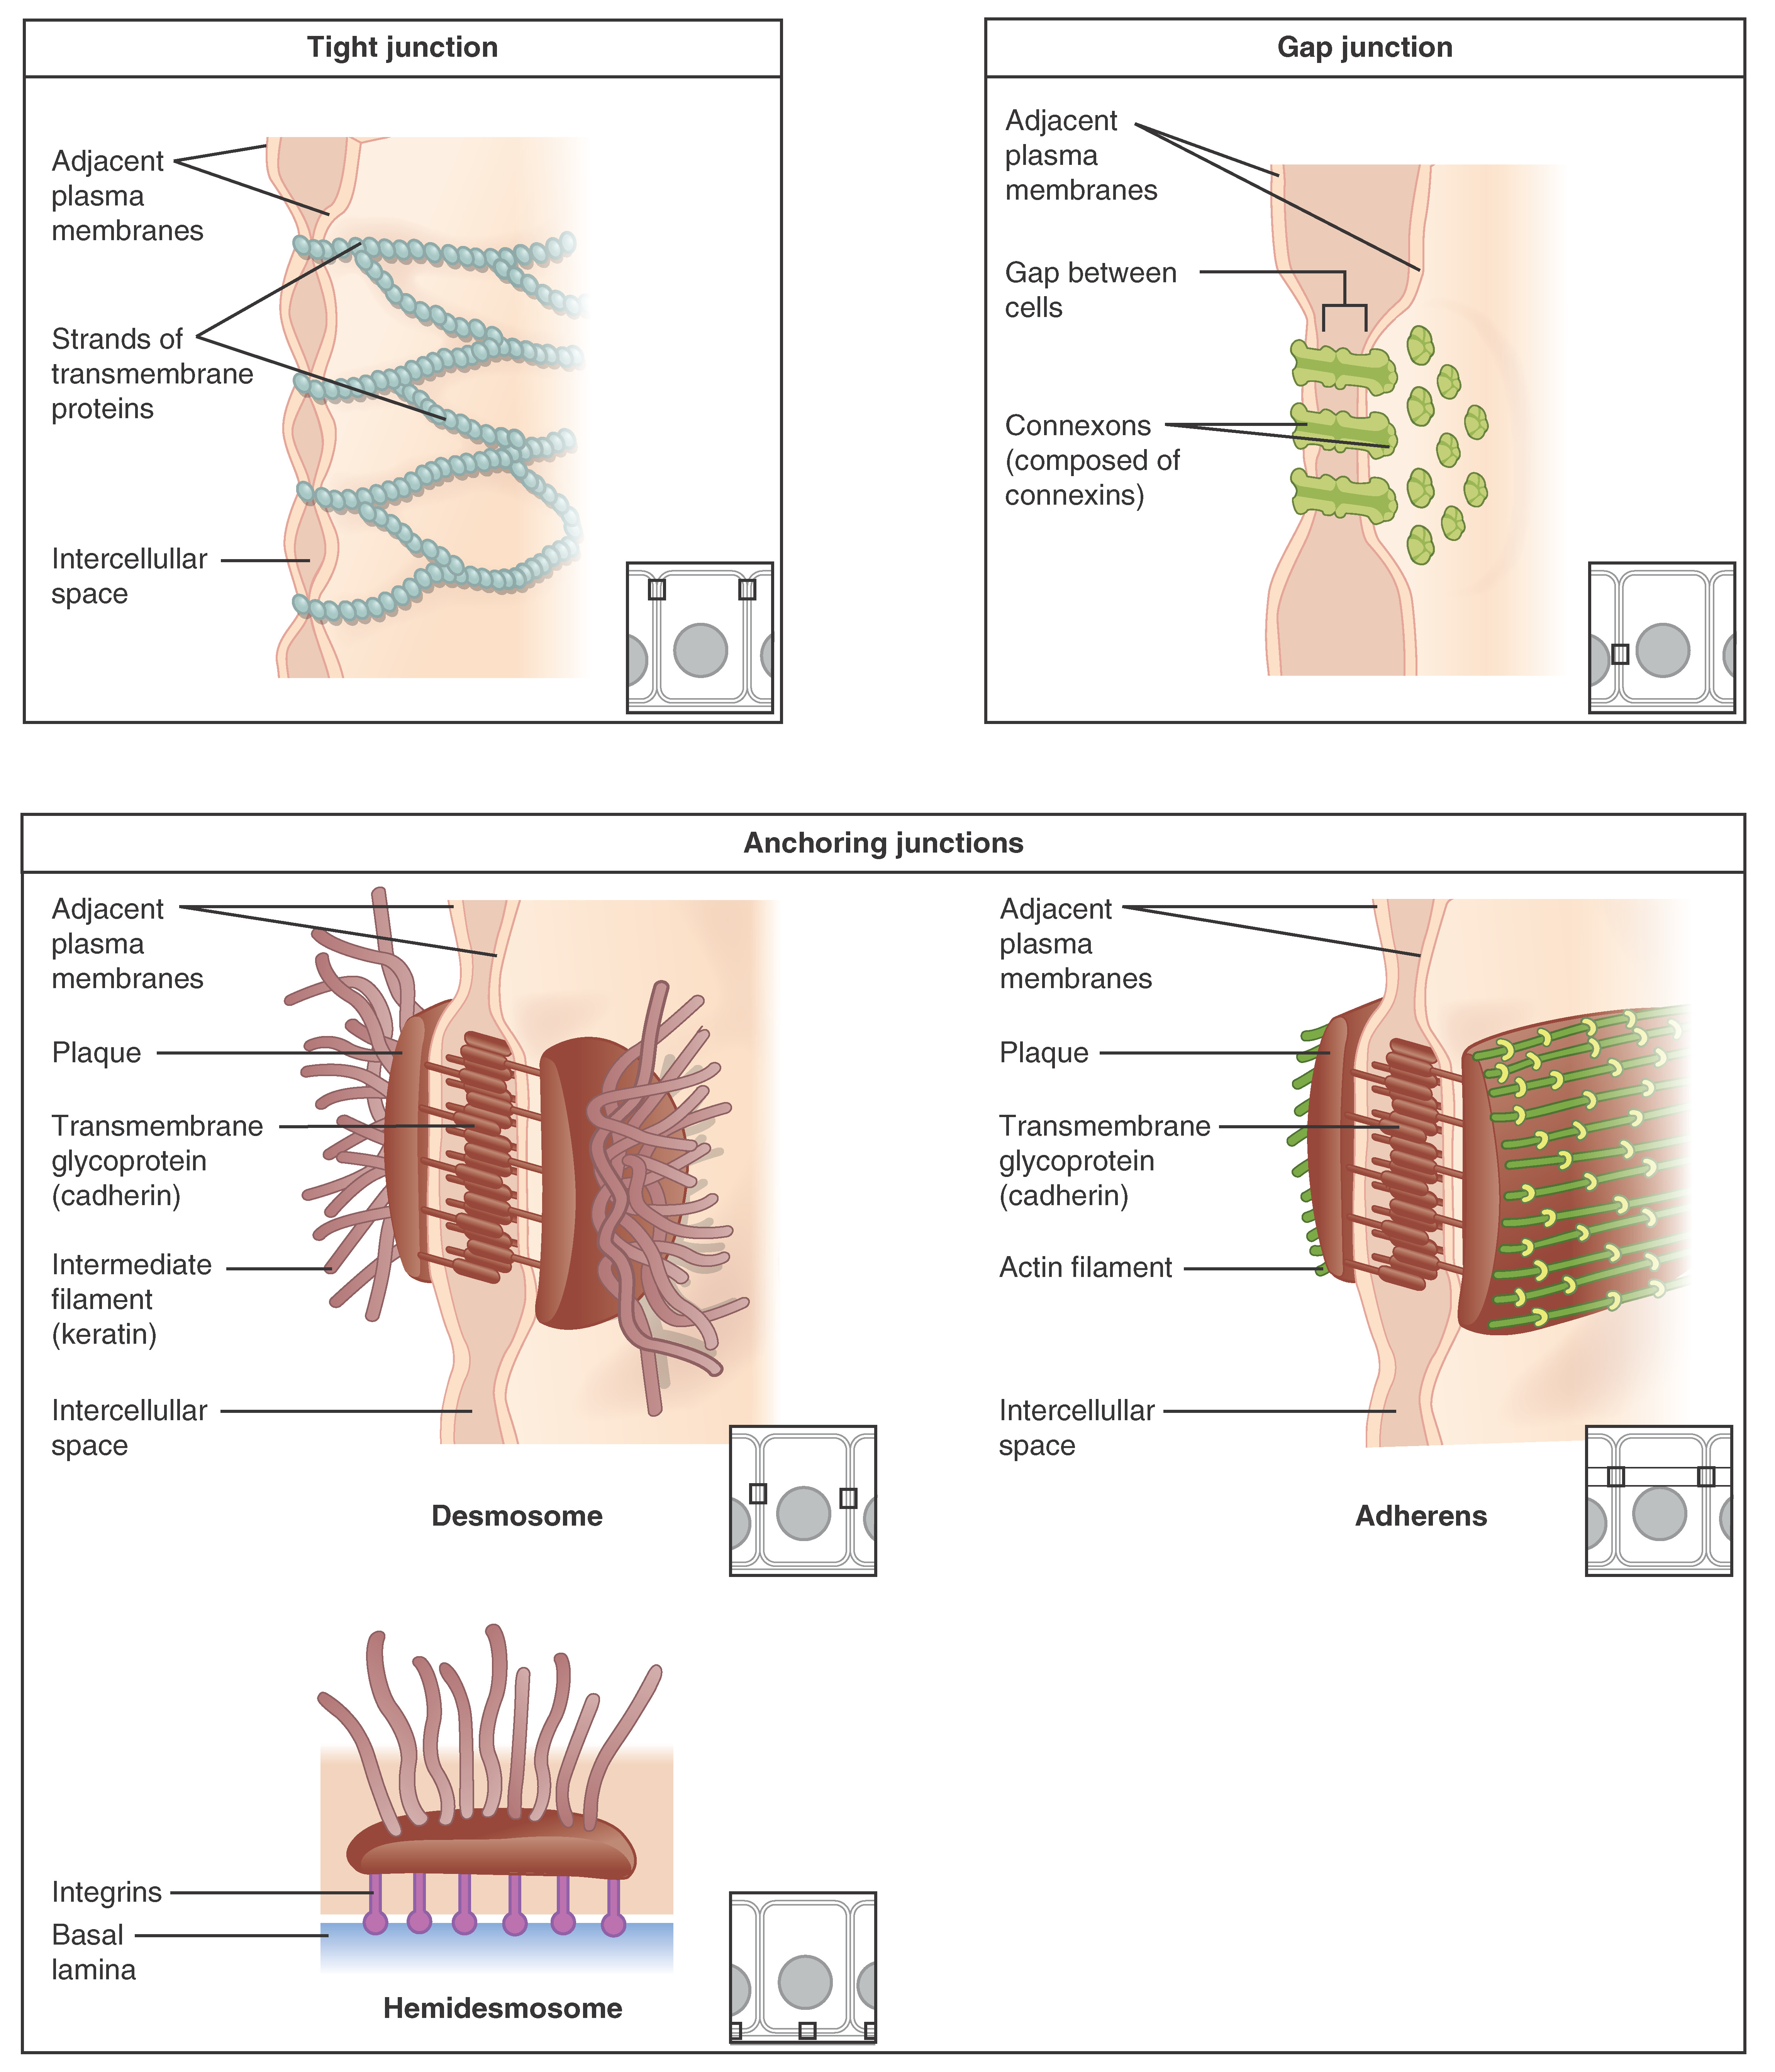 These three illustrations each show the edges of two vertical cell membranes. The cell membranes are viewed partially from the side so that the inside edge of the right cell membrane is visible. The upper left image shows a tight junction. The two cell membranes are bound by transmembrane protein strands. The proteins travel the inside edge of the right cell membrane and cross over to the left cell membrane, cinching the two membranes together. The cell membranes are still somewhat separated in between neighboring strands, creating intercellular spaces. The upper right diagram shows a gap junction. The gap junctions are composed of two interlocking connexins, which are round, hollow tubes that extend through the cell membranes. Two connexins, one from the left cell membrane and the other from the right cell membrane, meet between the two cells, forming a connexon. Even at the site of the connexon, there is a small gap between the cell membranes. On the inside edge of the right cell membrane, the gap junction appears as a depression. Three connexins are embedded into the membranes like buttons on a shirt. The bottom images show the three types of anchoring junctions. The left image shows a desmosome. Here, the inside edge of both the right and left cell membranes have brown, round plaques. Each plaque has tentacle-like intermediate filaments (keratin) that extend into each cell's cytoplasm. The two plaques are connected across the intercellular space by several interlocking transmembrane glycoproteins (cadherin). The connected glycoproteins look similar to a zipped-up zipper between the right and left cell membranes. The right image shows an adheren. These are similar to desmosomes, with two plaques on the inside edge of each cell membrane connected across the intercellular space by glycoproteins. However, the plaques do not contain the tentacle-like intermediate filaments branching into the cytoplasm. Instead, the plaques are ribbed with green actin filaments. The f